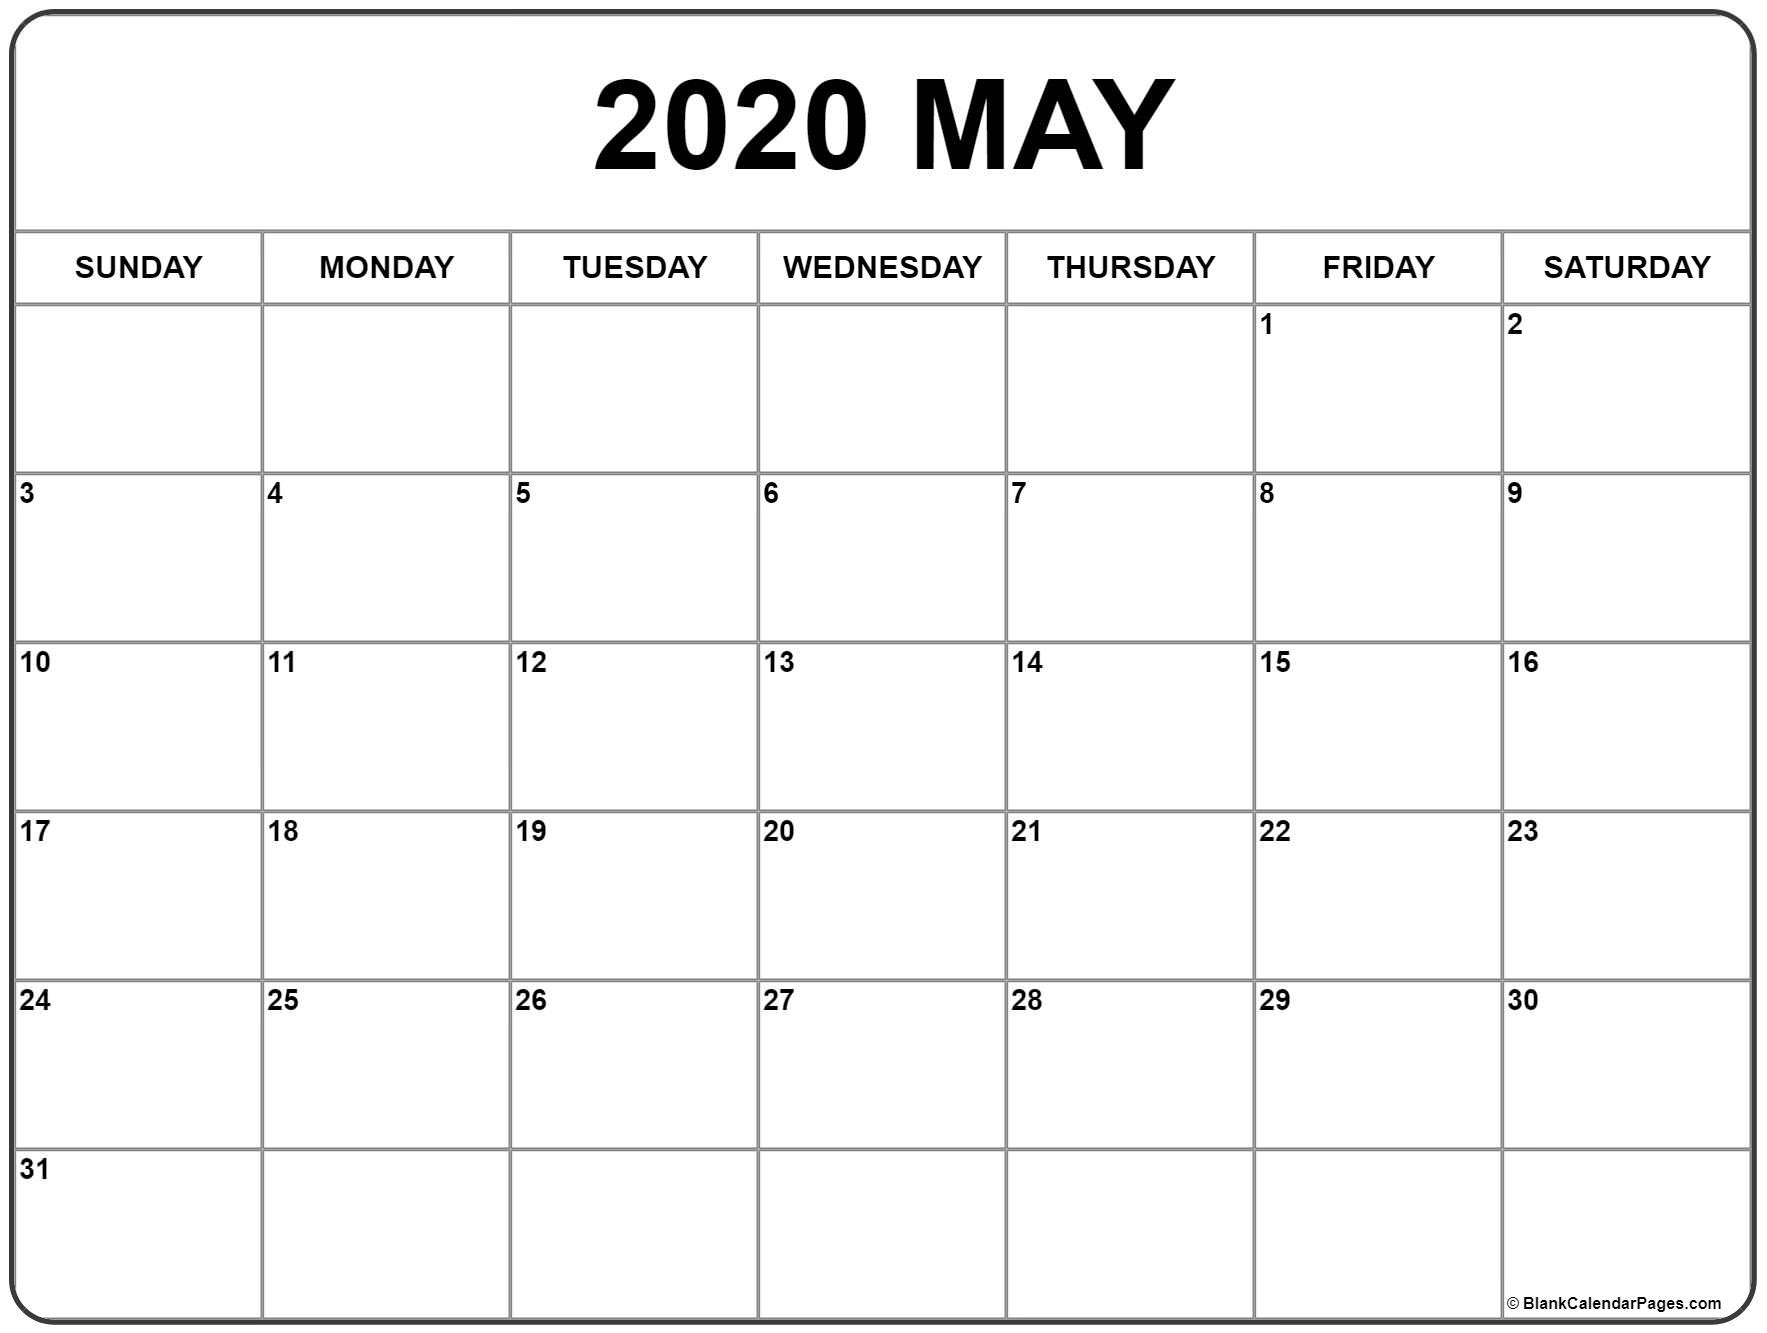 May 2020 Calendar | Free Printable Monthly Calendars  2020 Printable Calendar Free Full Page